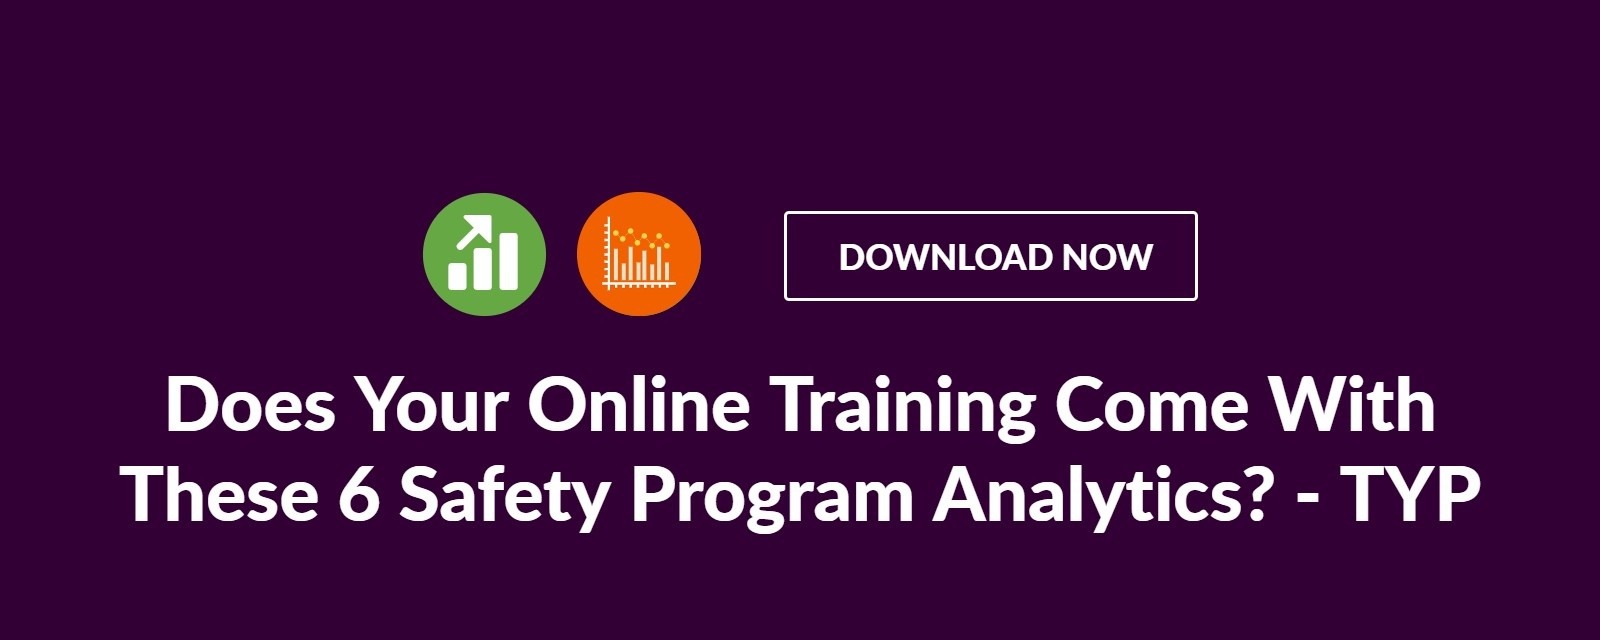 Does Your Online Training Come With These 6 Safety Program Analytics?